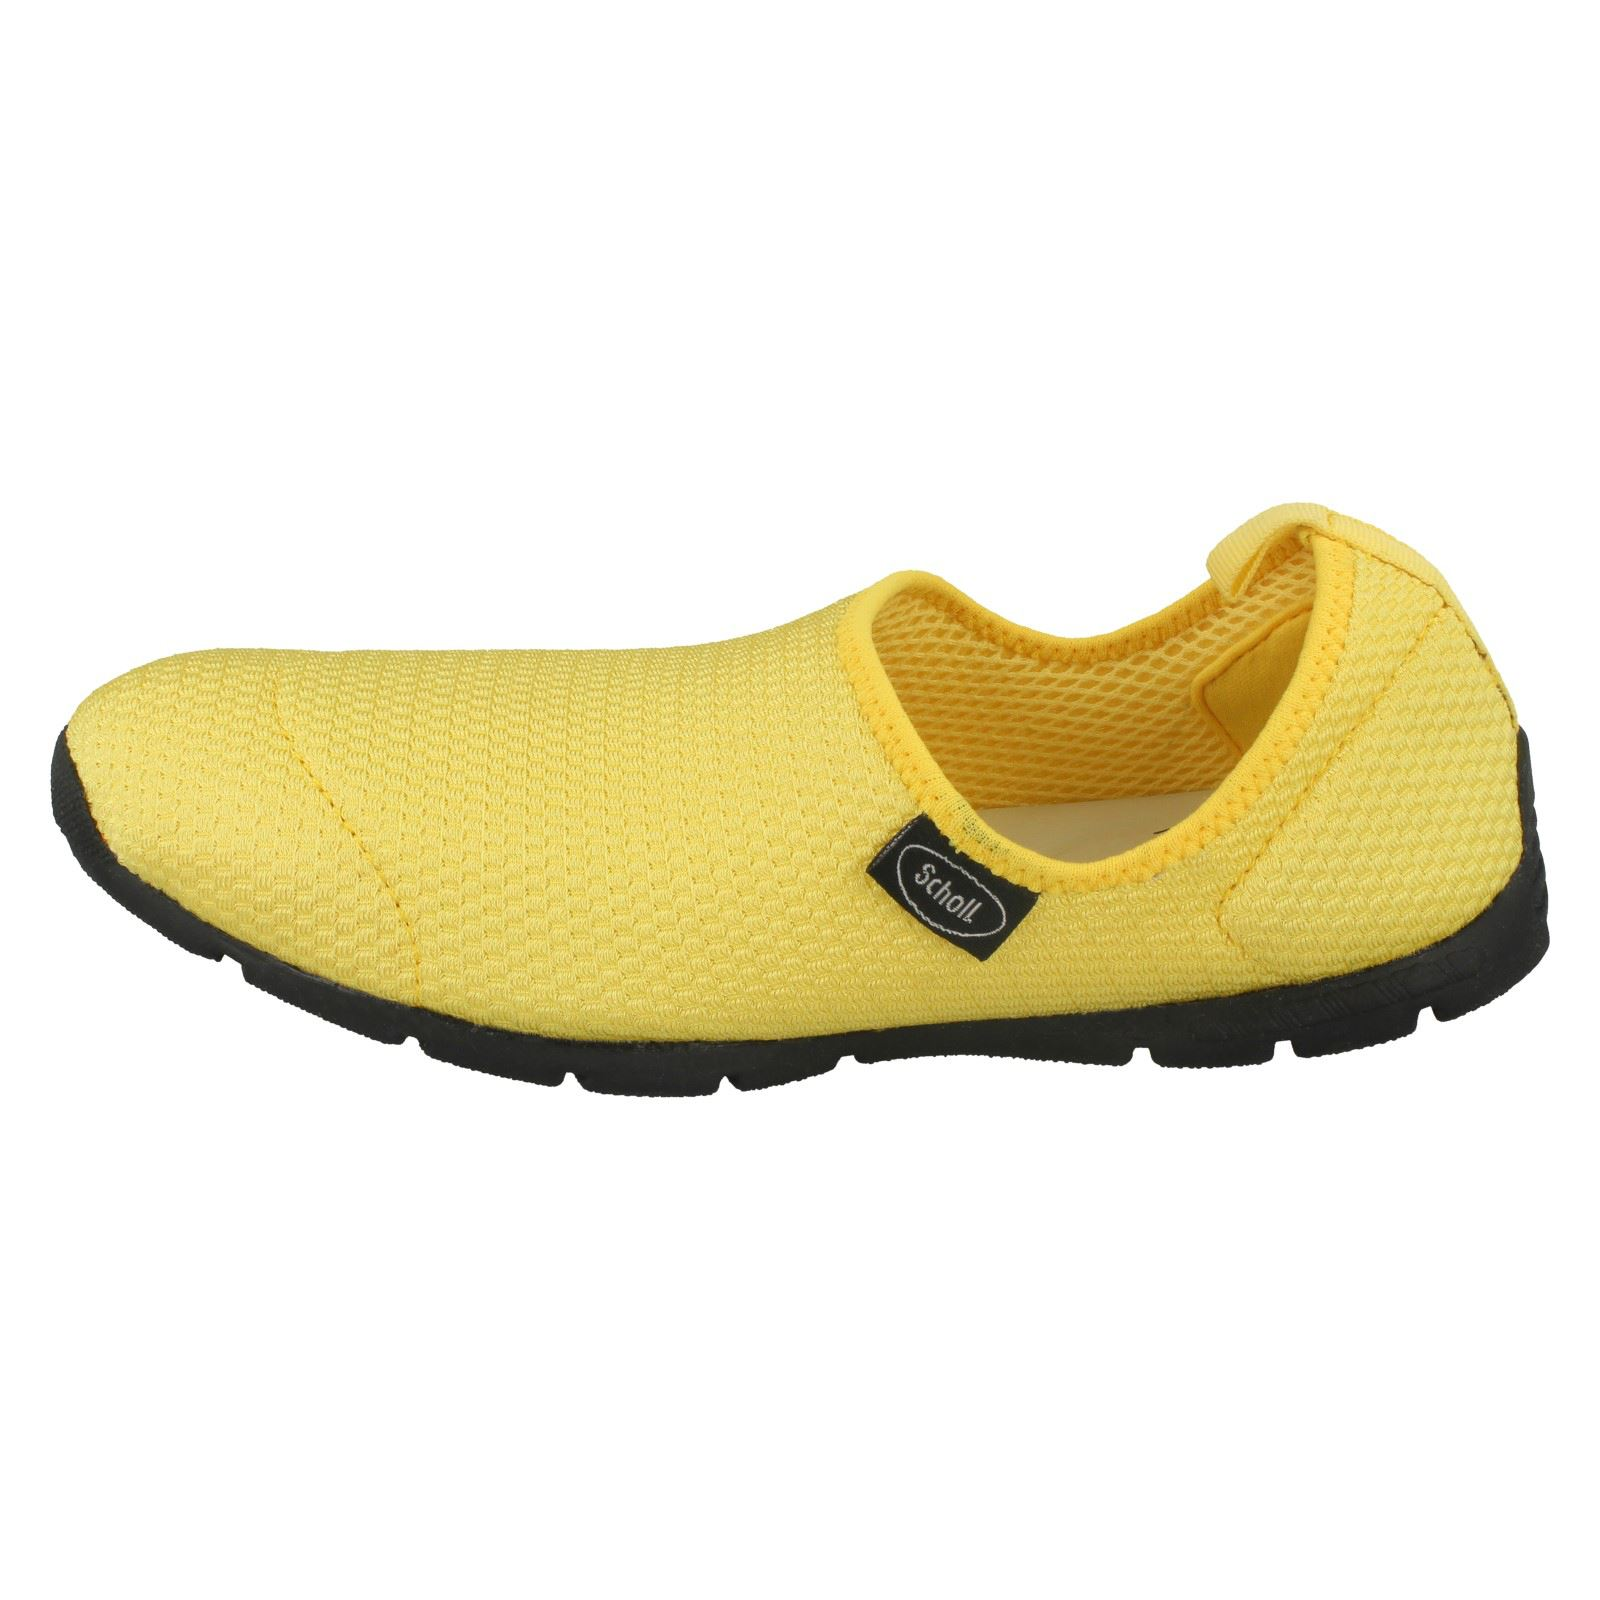 Ladies Dr Scholl Casual Shoes 9429